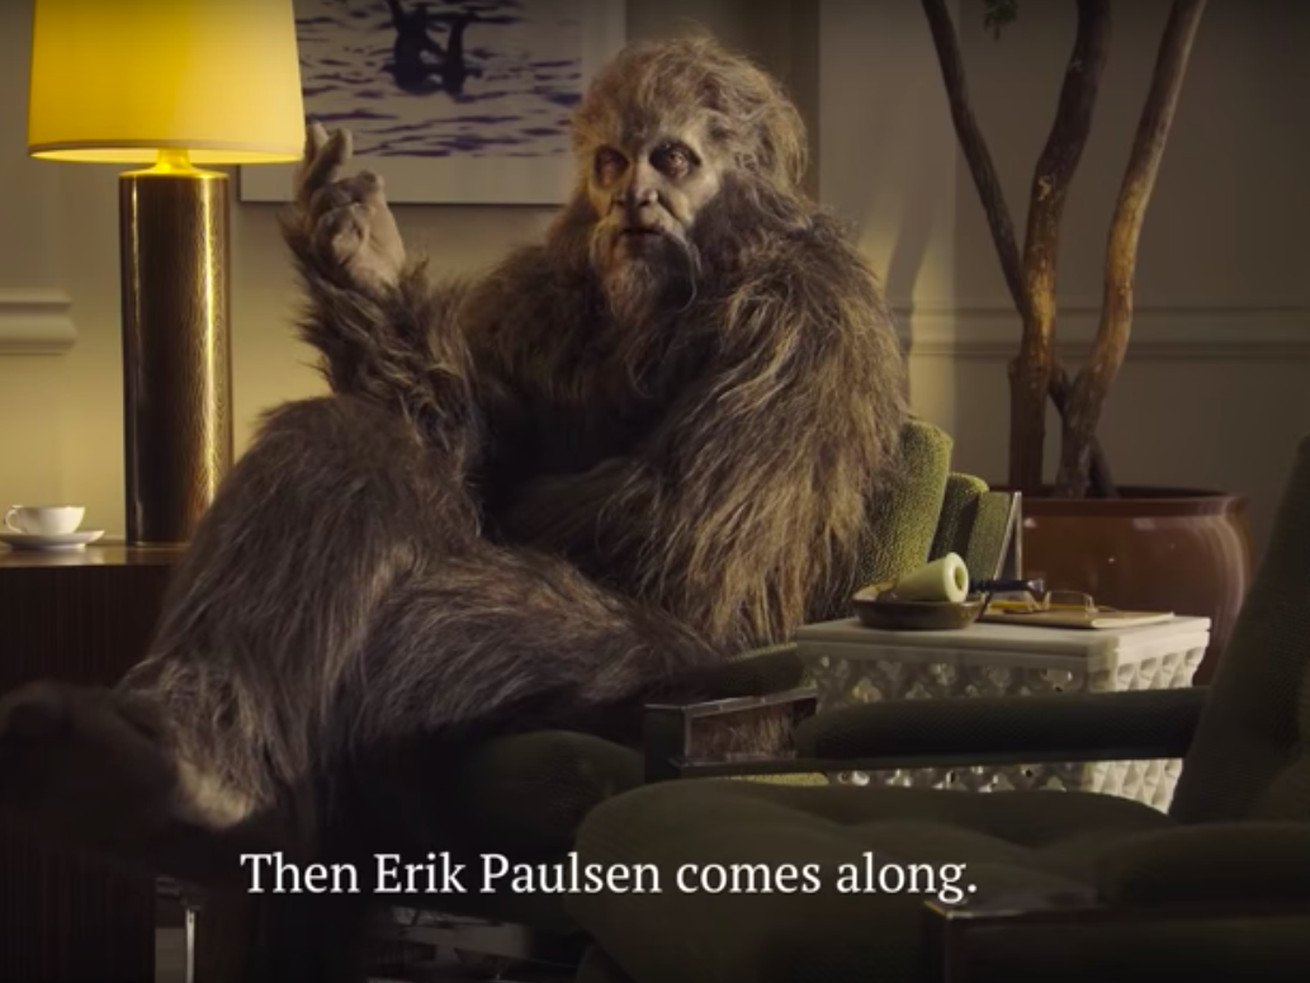 Bigfoot stars in an ad by Minnesota House candidate Dean Phillips, a Democrat.